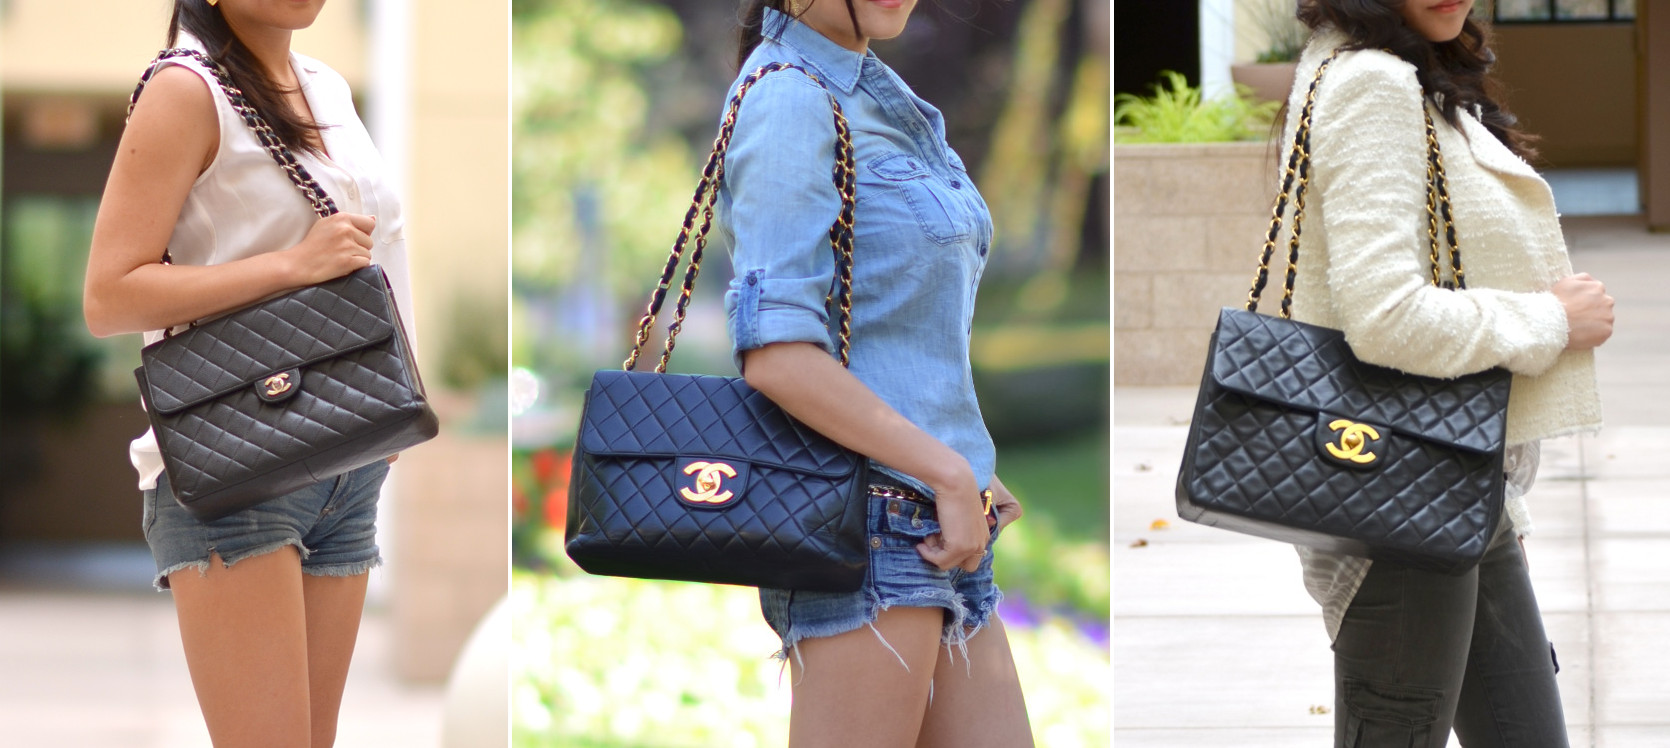 624a966cce2 Outfit with Black Chanel Caviar Classic Jumbo Flap Bag | Lollipuff